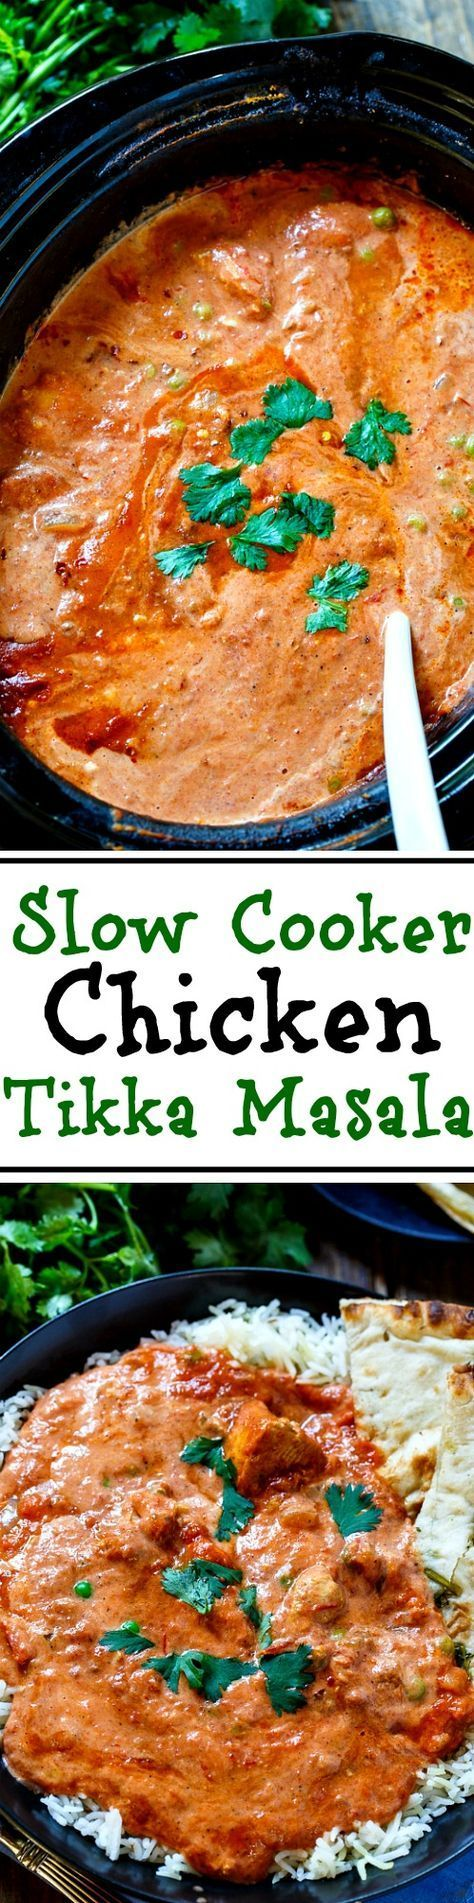 Slow Cooker Tikka Masala. With this easy recipe you can enjoy one of your Indian restaurant favorites at home.